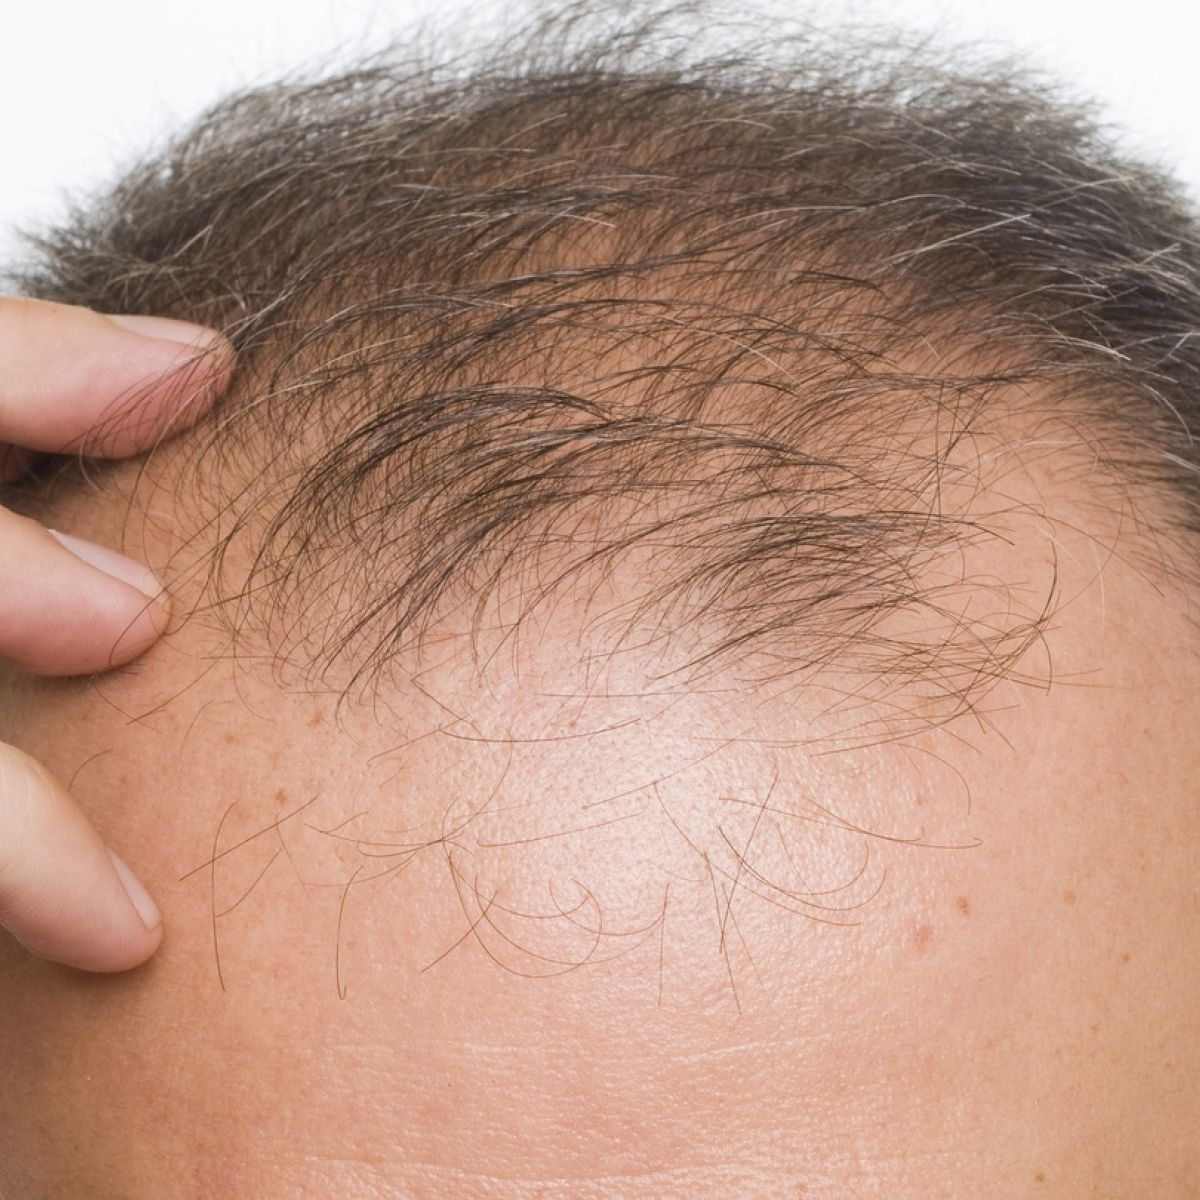 Beating baldness: tips and ways to avoid hair loss